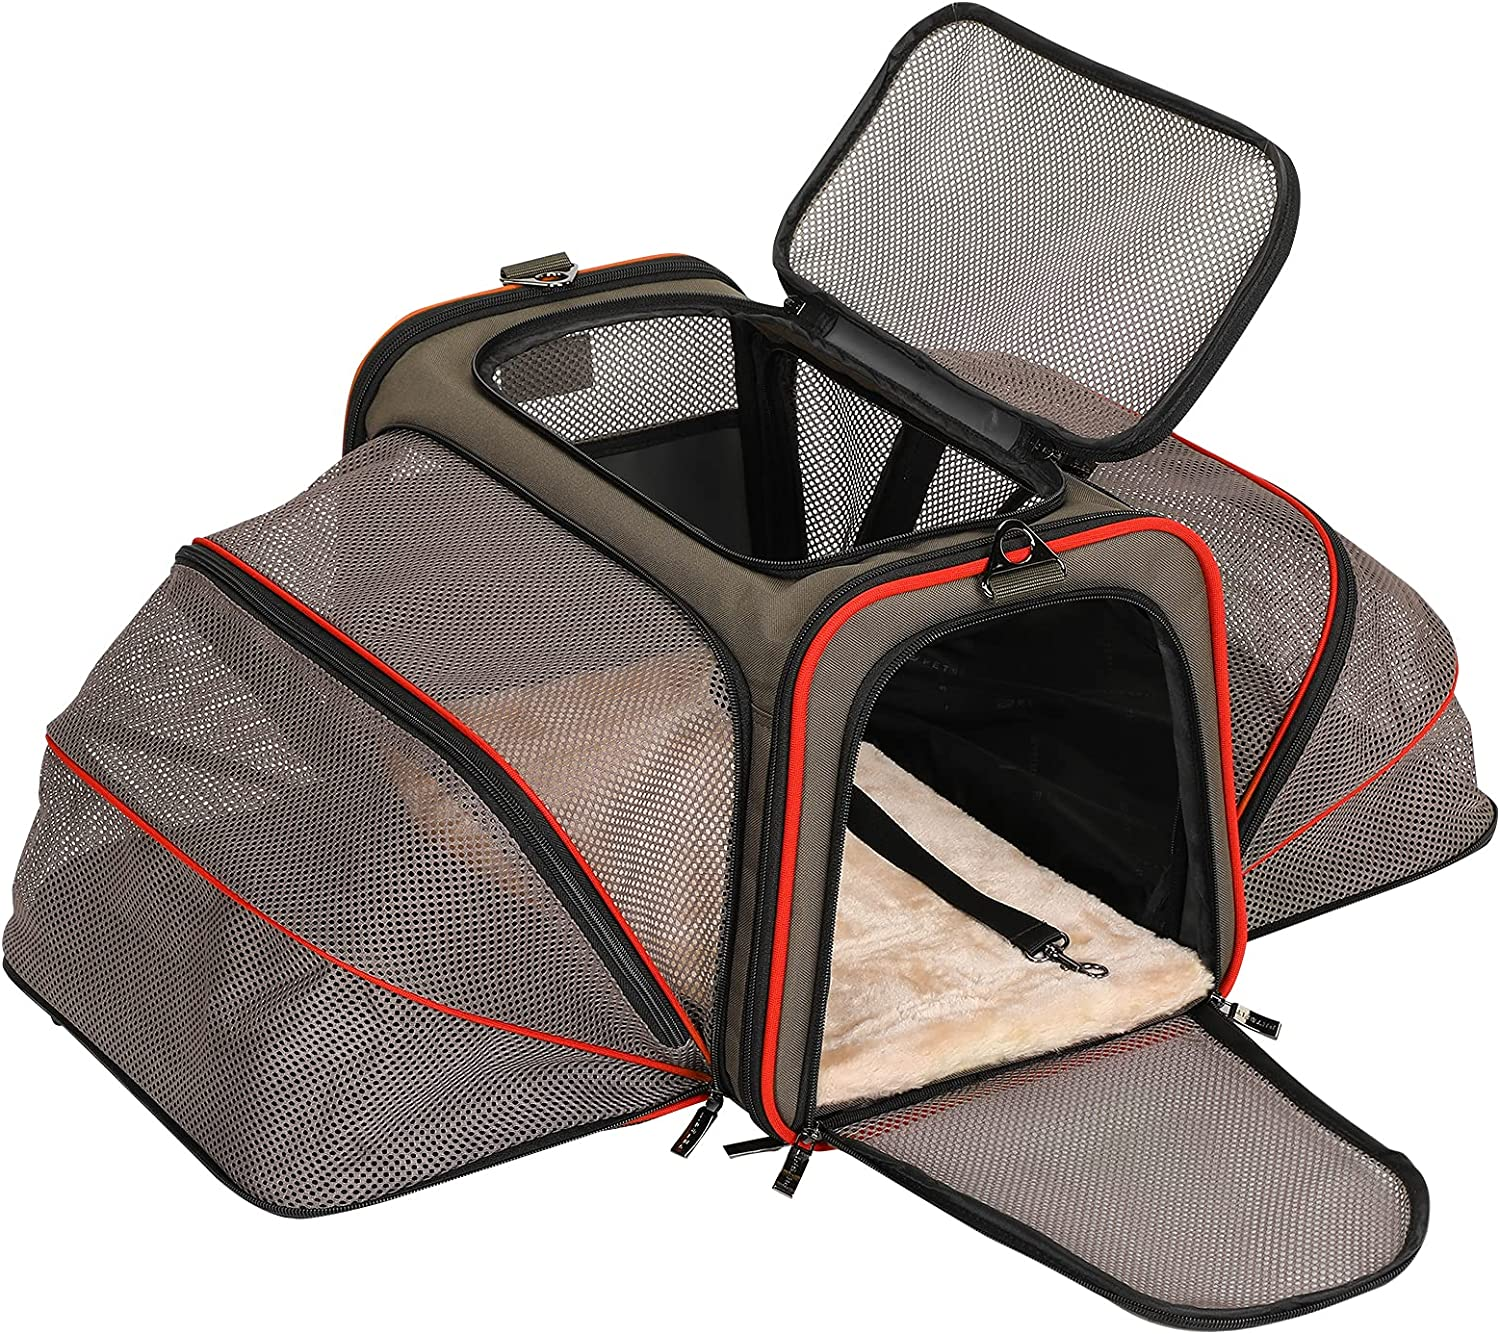 Petsfit Expandable Cat Carrier Dog Soft High quality new Approved Airline Fashion